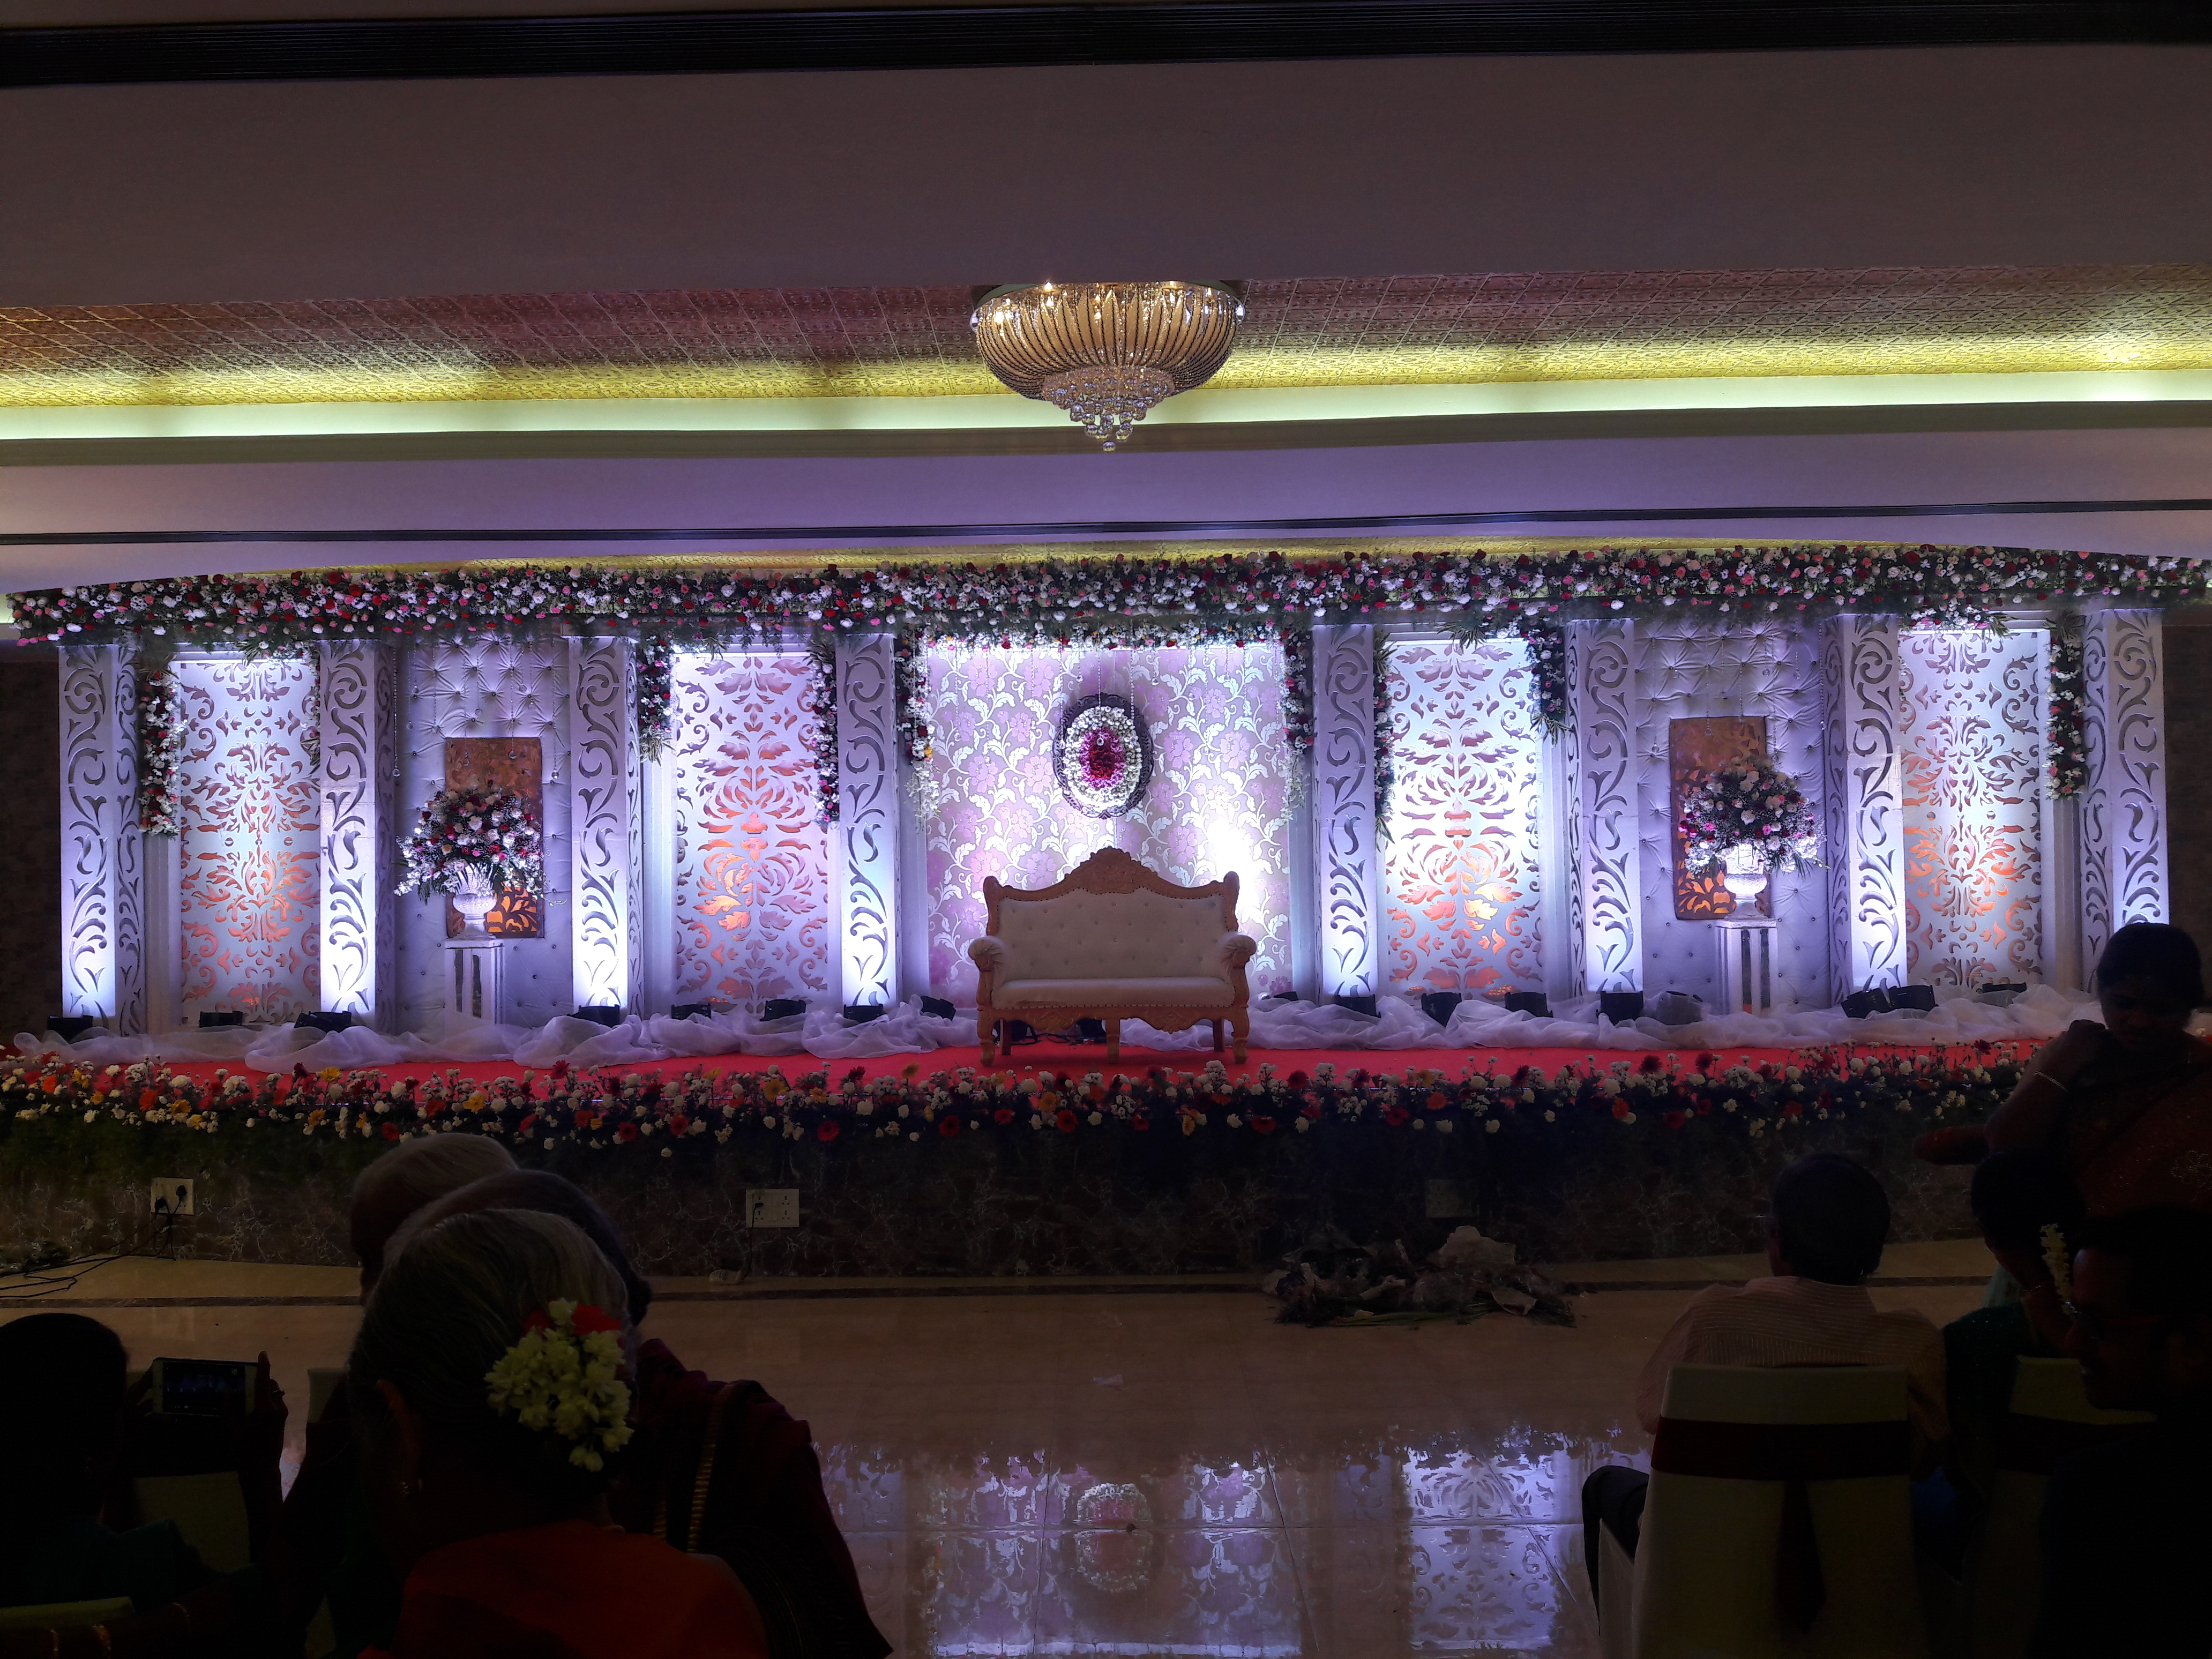 Leela palace wedding decoration in chennai mobile no9790999569 by 9790999569 by classic events decors leela palace wedding decorators in chennaiwestin wedding decorator in chennaiwestin marriage decoration in chennai junglespirit Gallery